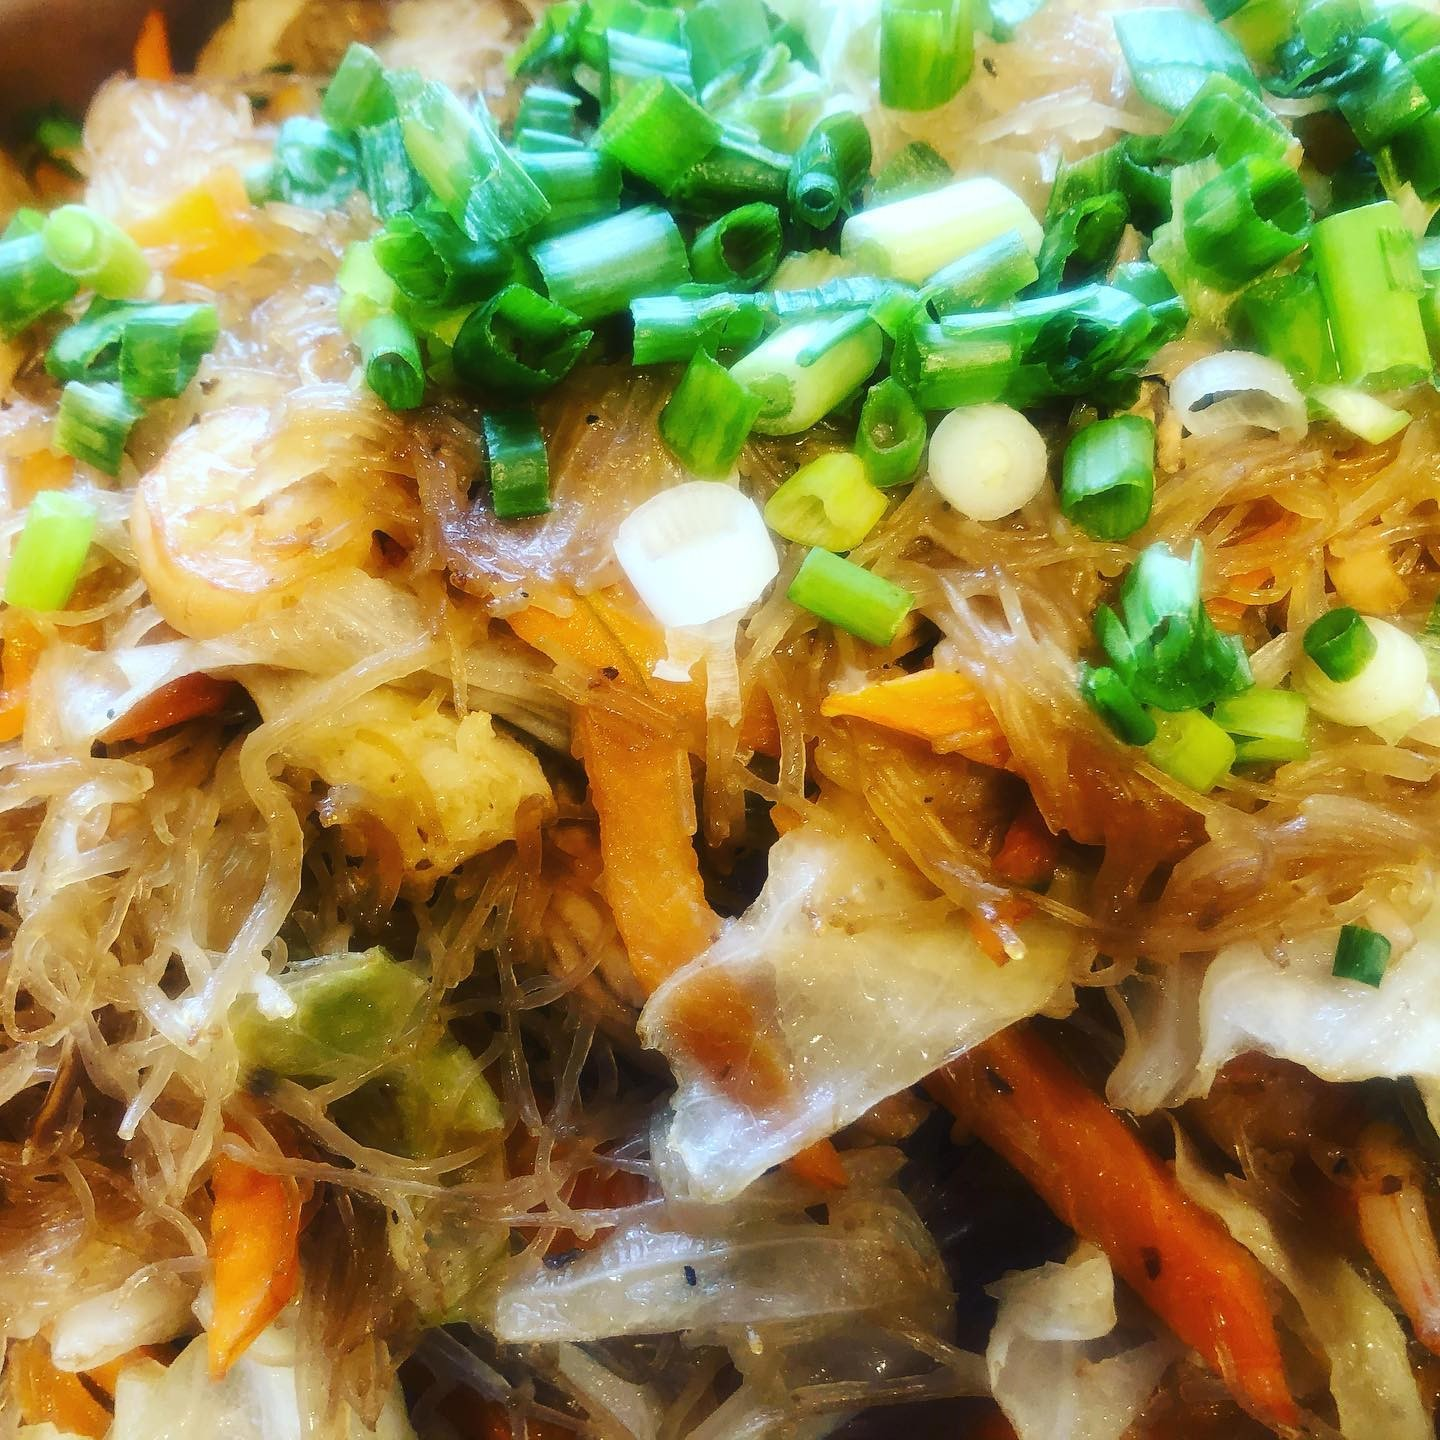 chicken and vegetables tossed with thin rice noodles